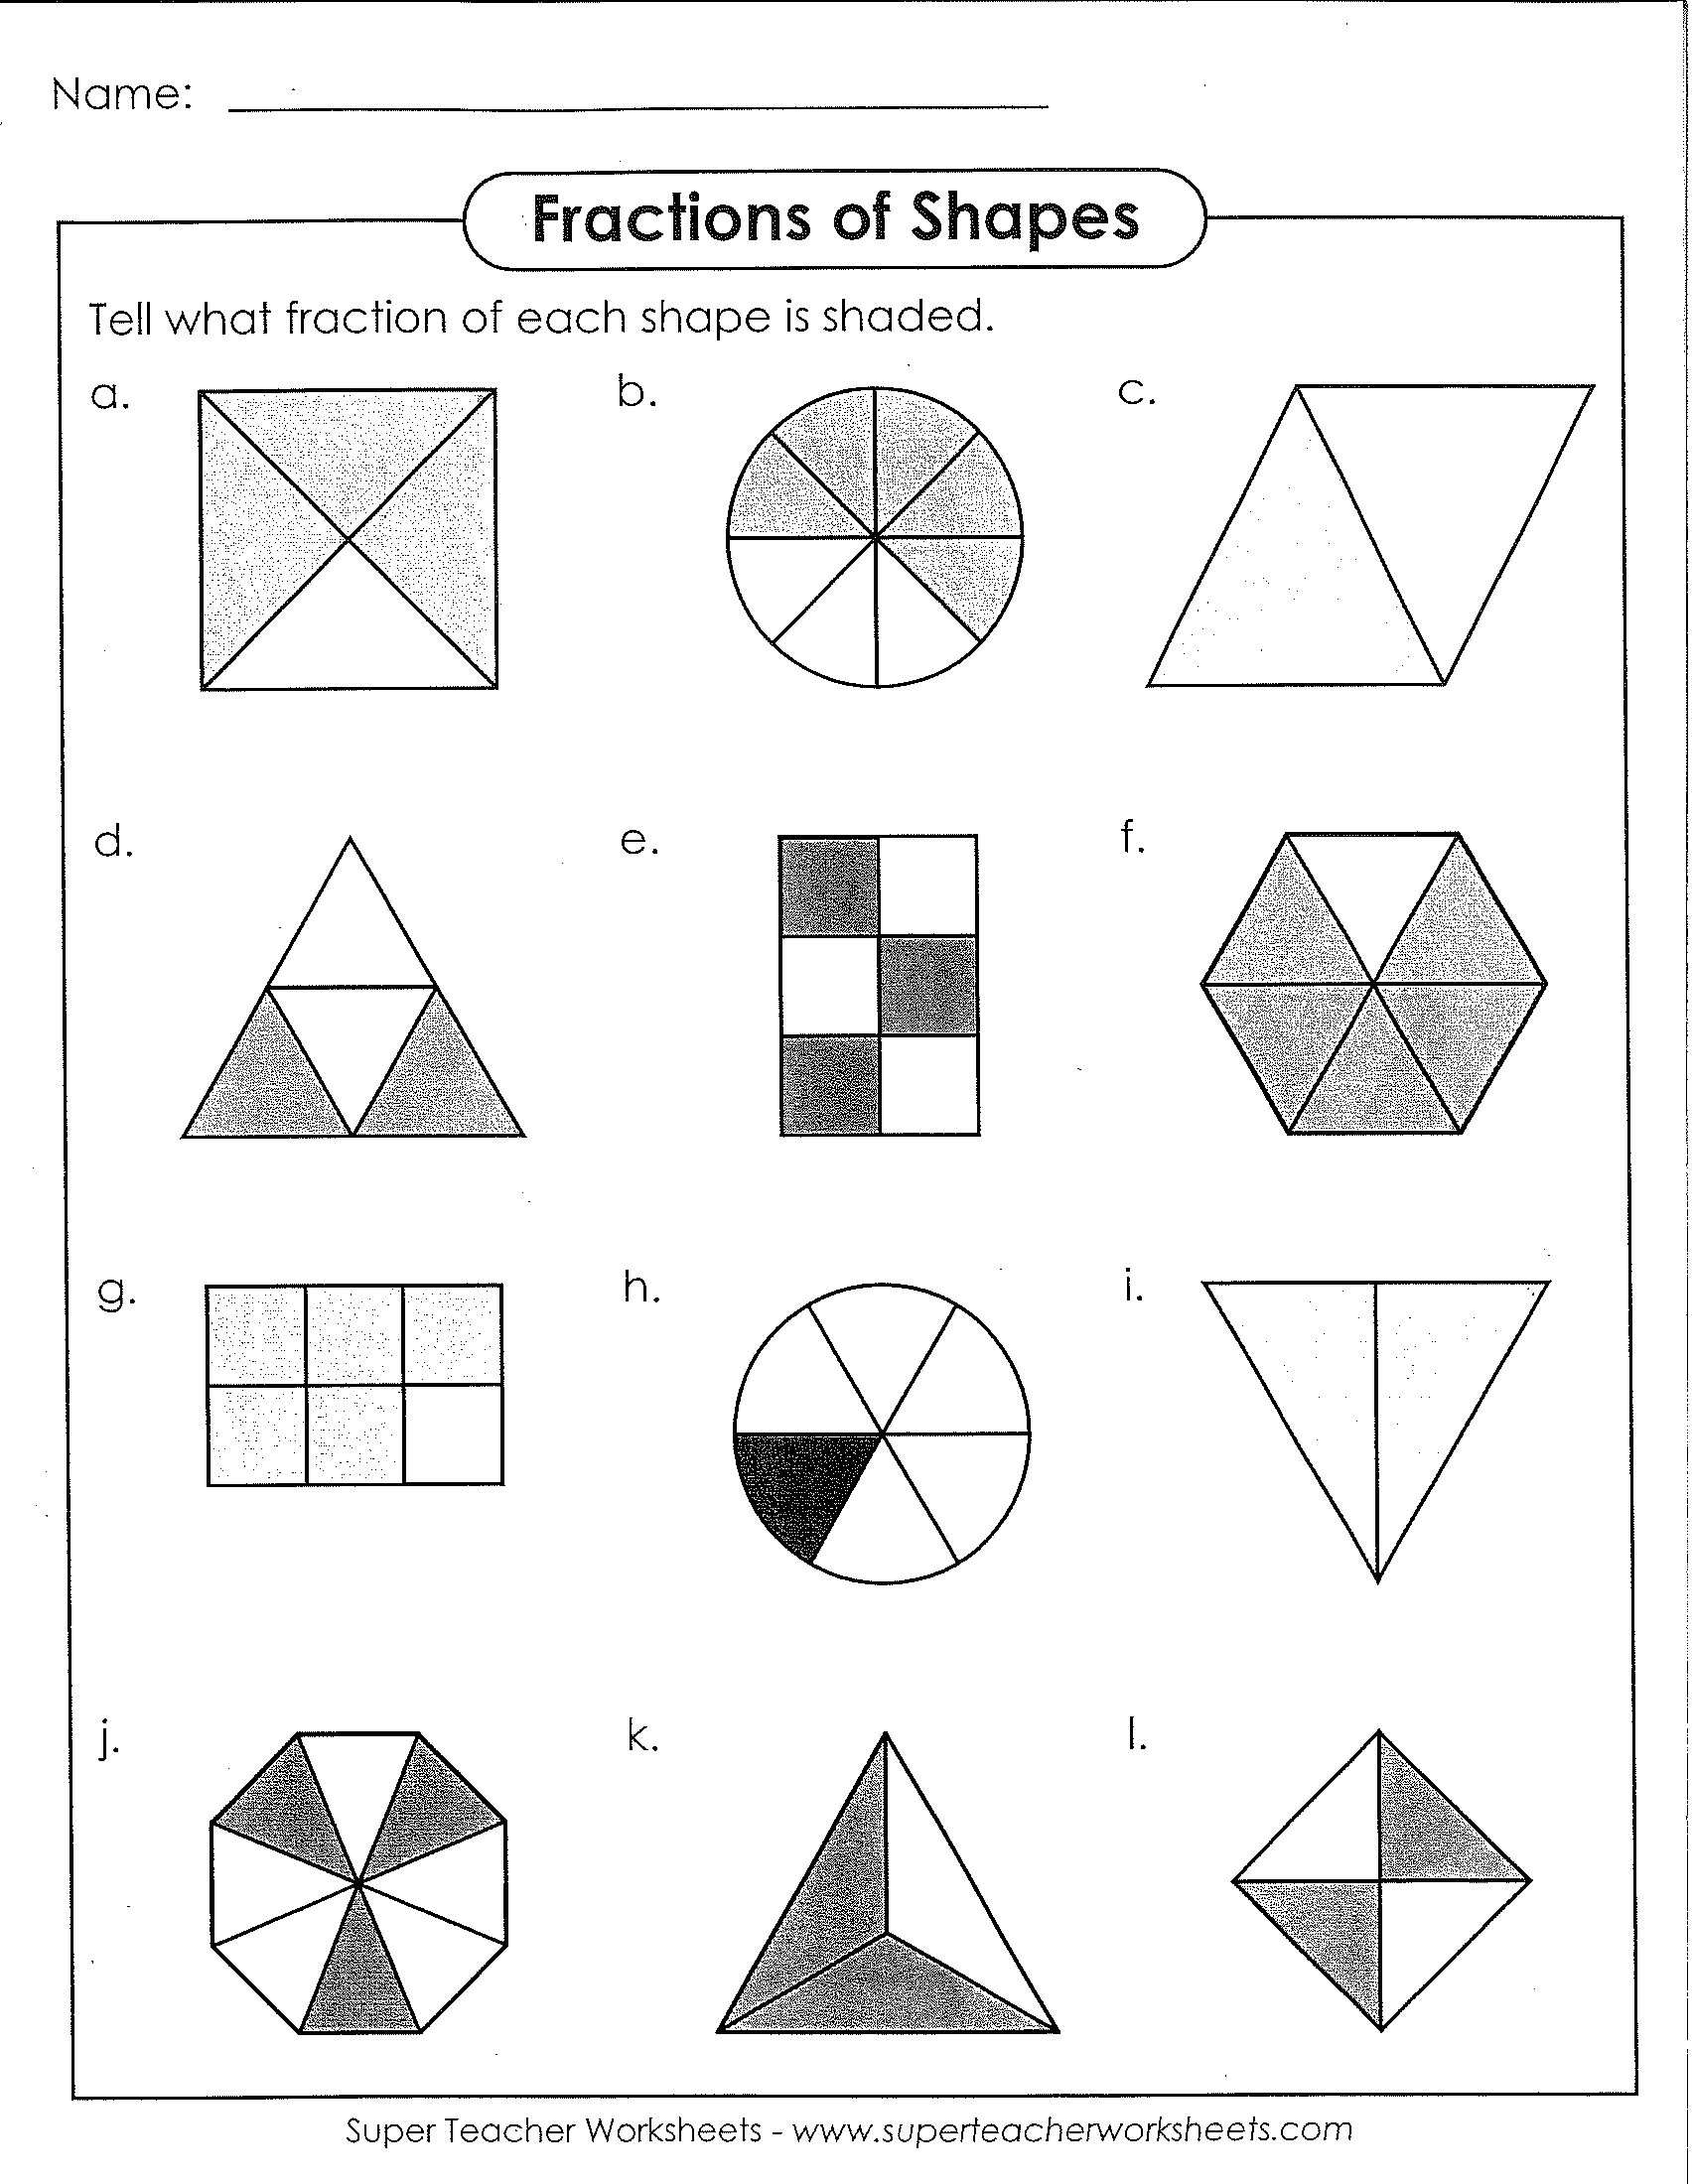 Fractions of Shapes